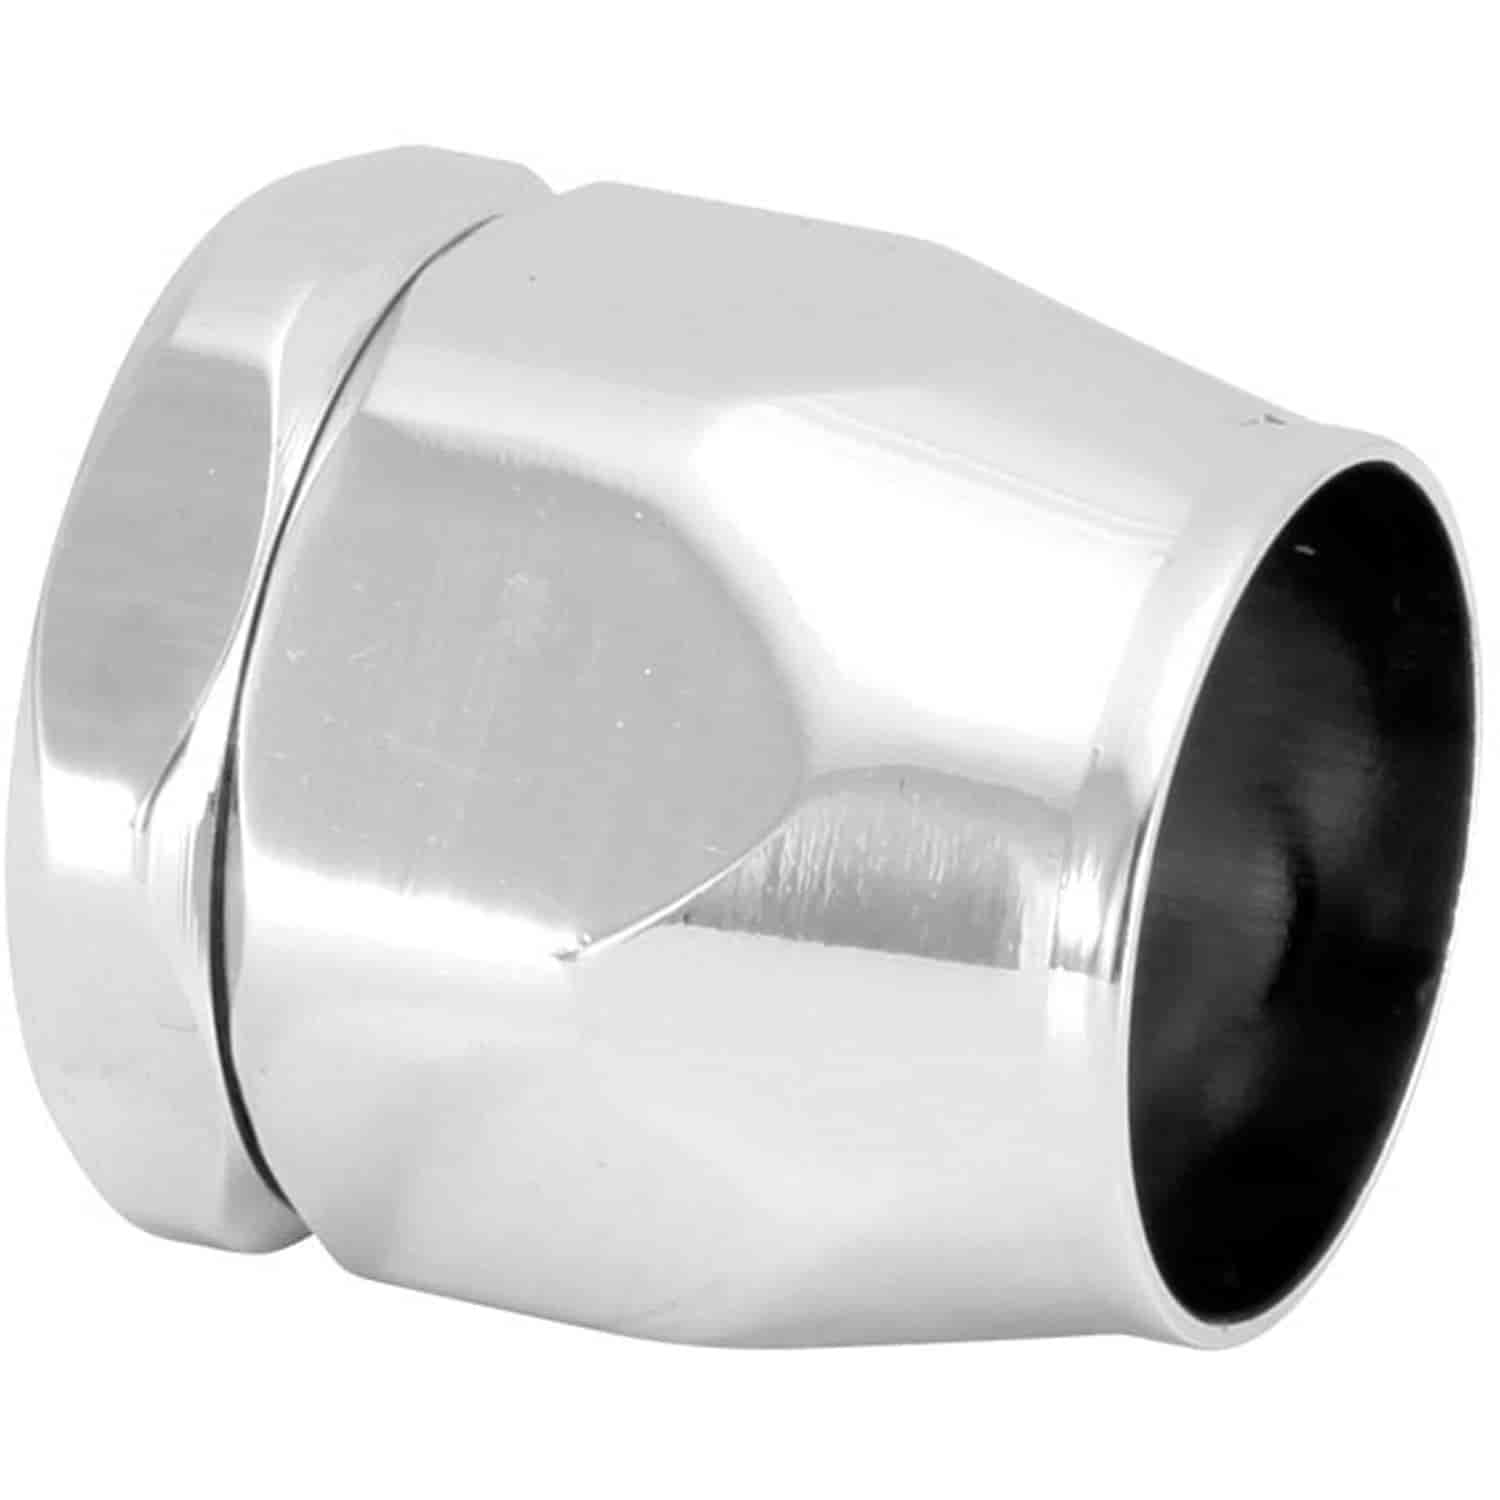 Spectre 3368 - Spectre Magna-Clamp Hose Fittings